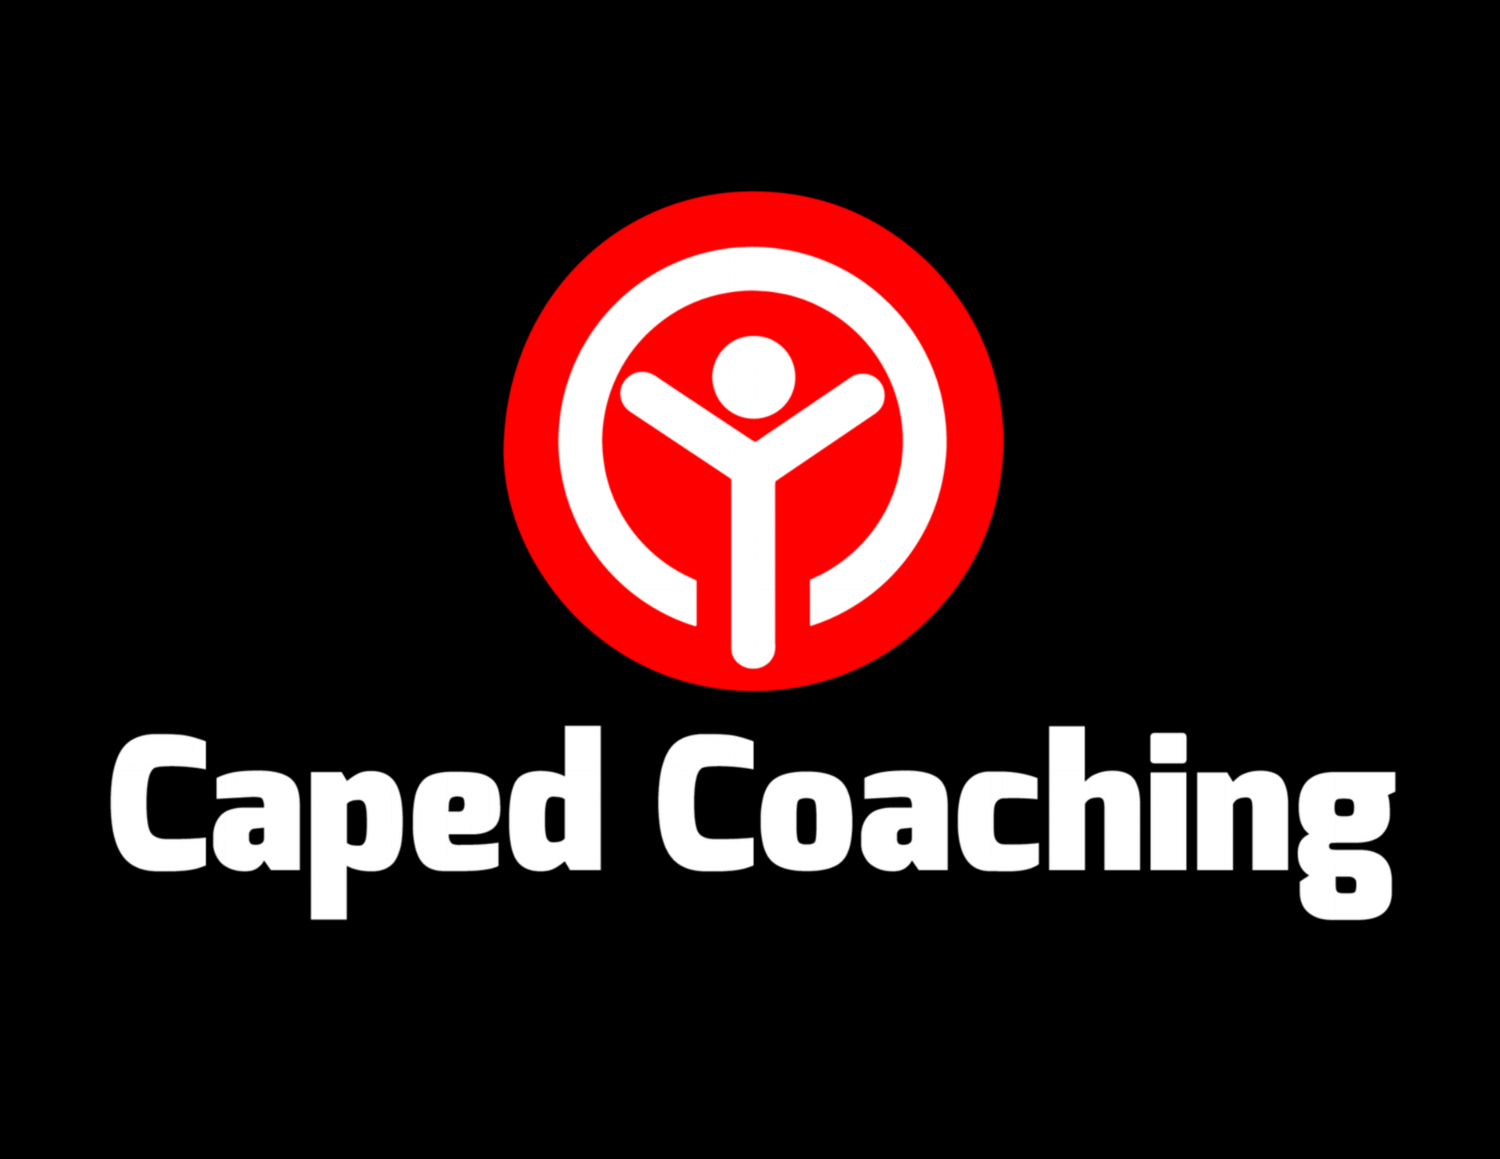 Caped Coaching